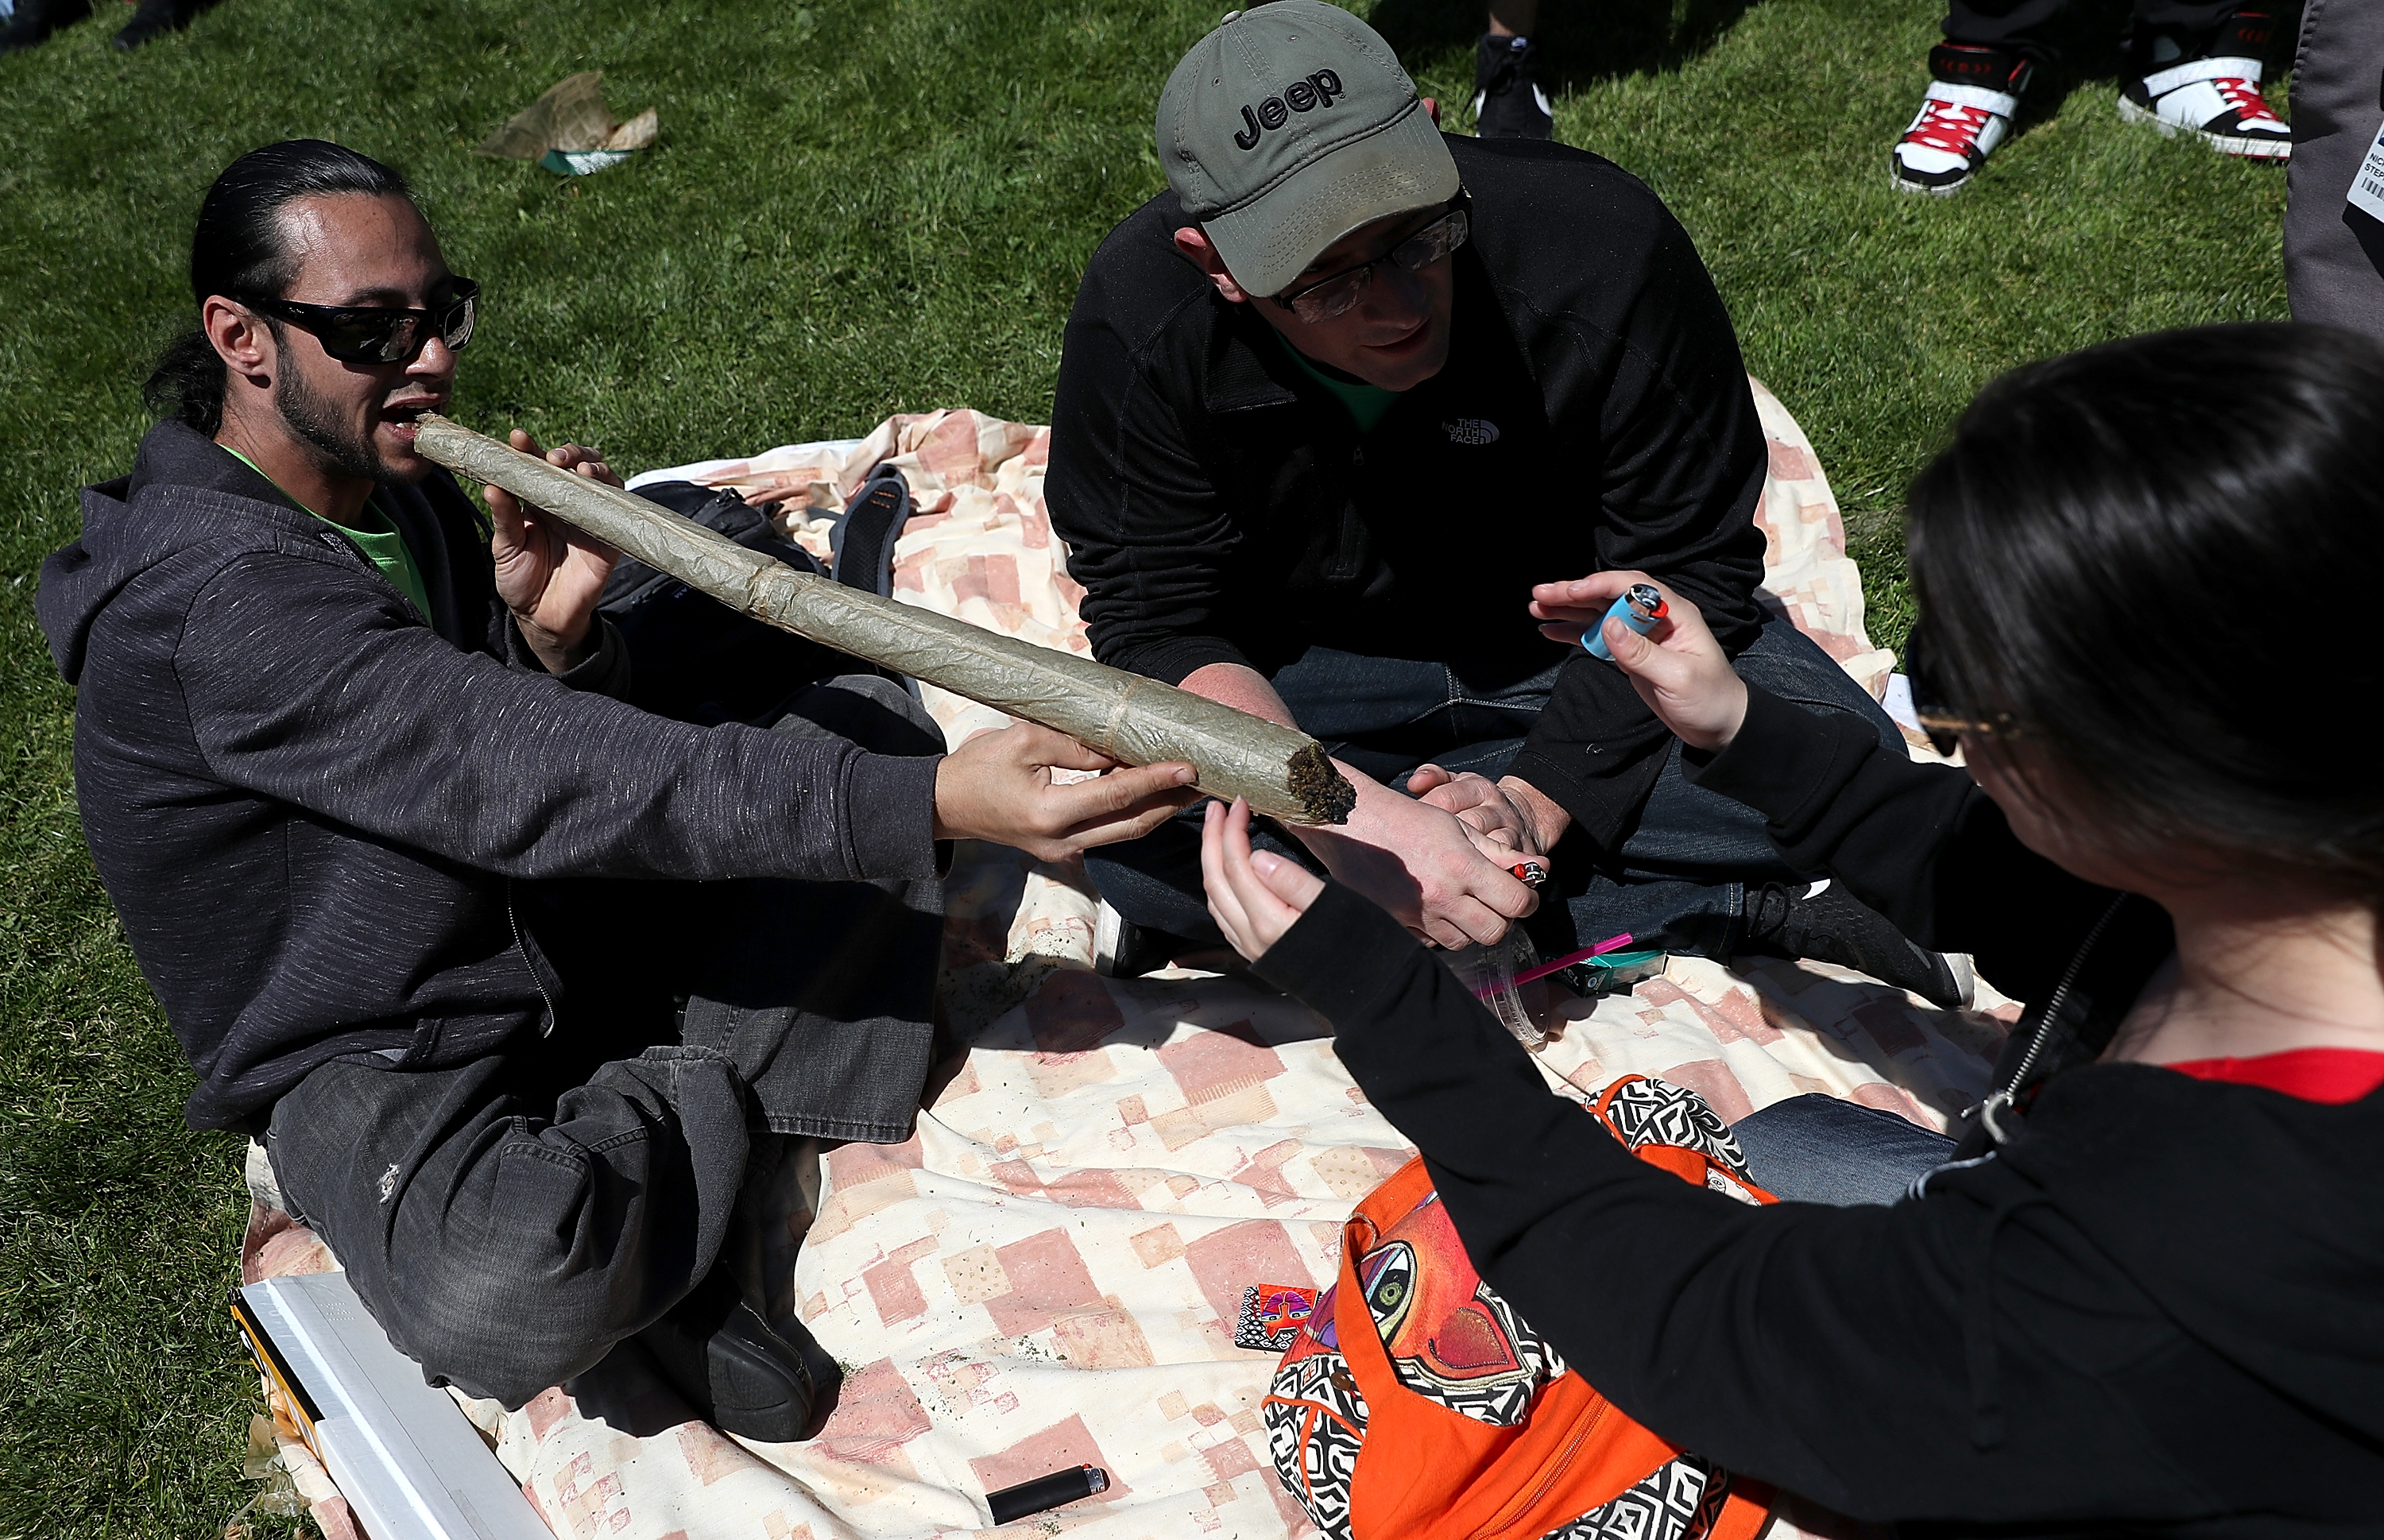 A marijuana user attempts to light an oversized joint during a 420 Day celebration on 'Hippie Hill' in Golden Gate Park on April 20, 2018, in San Francisco, California. (Getty)